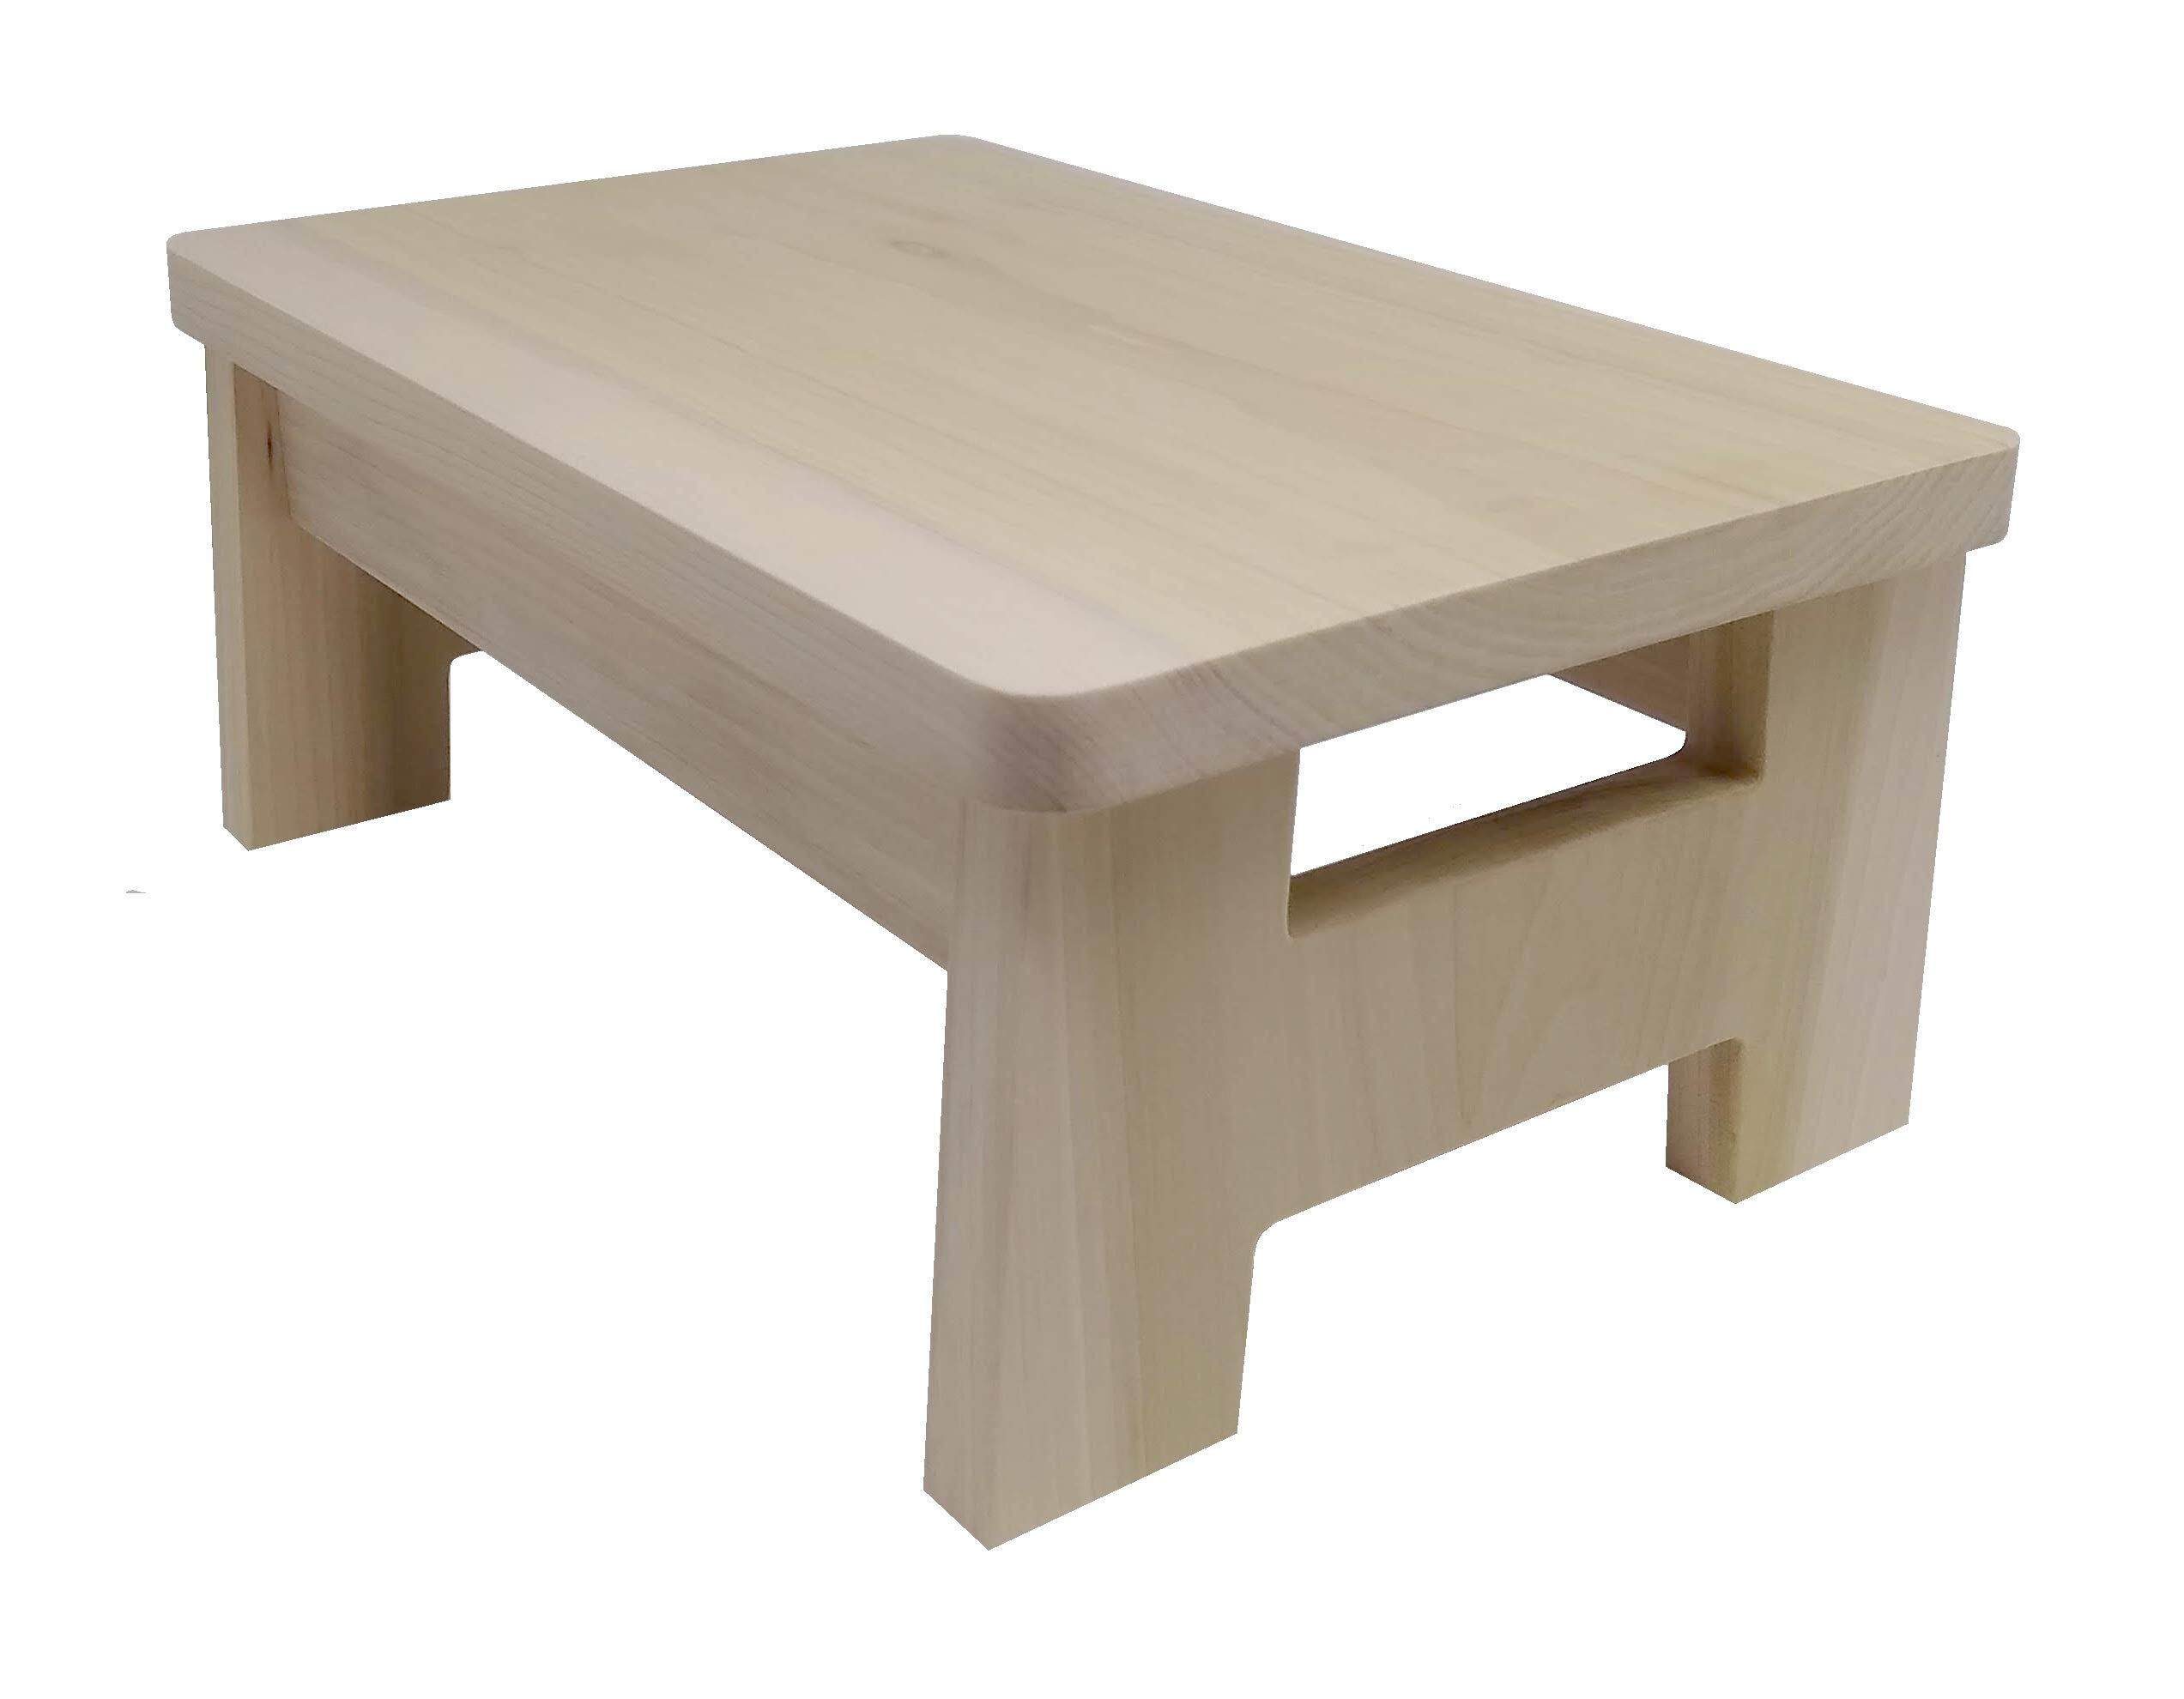 HollandCraft - 6 Inch Wooden Foot Stool - Unfinished - Hidden Wood Dowels (No Screws, Staples or Nails)